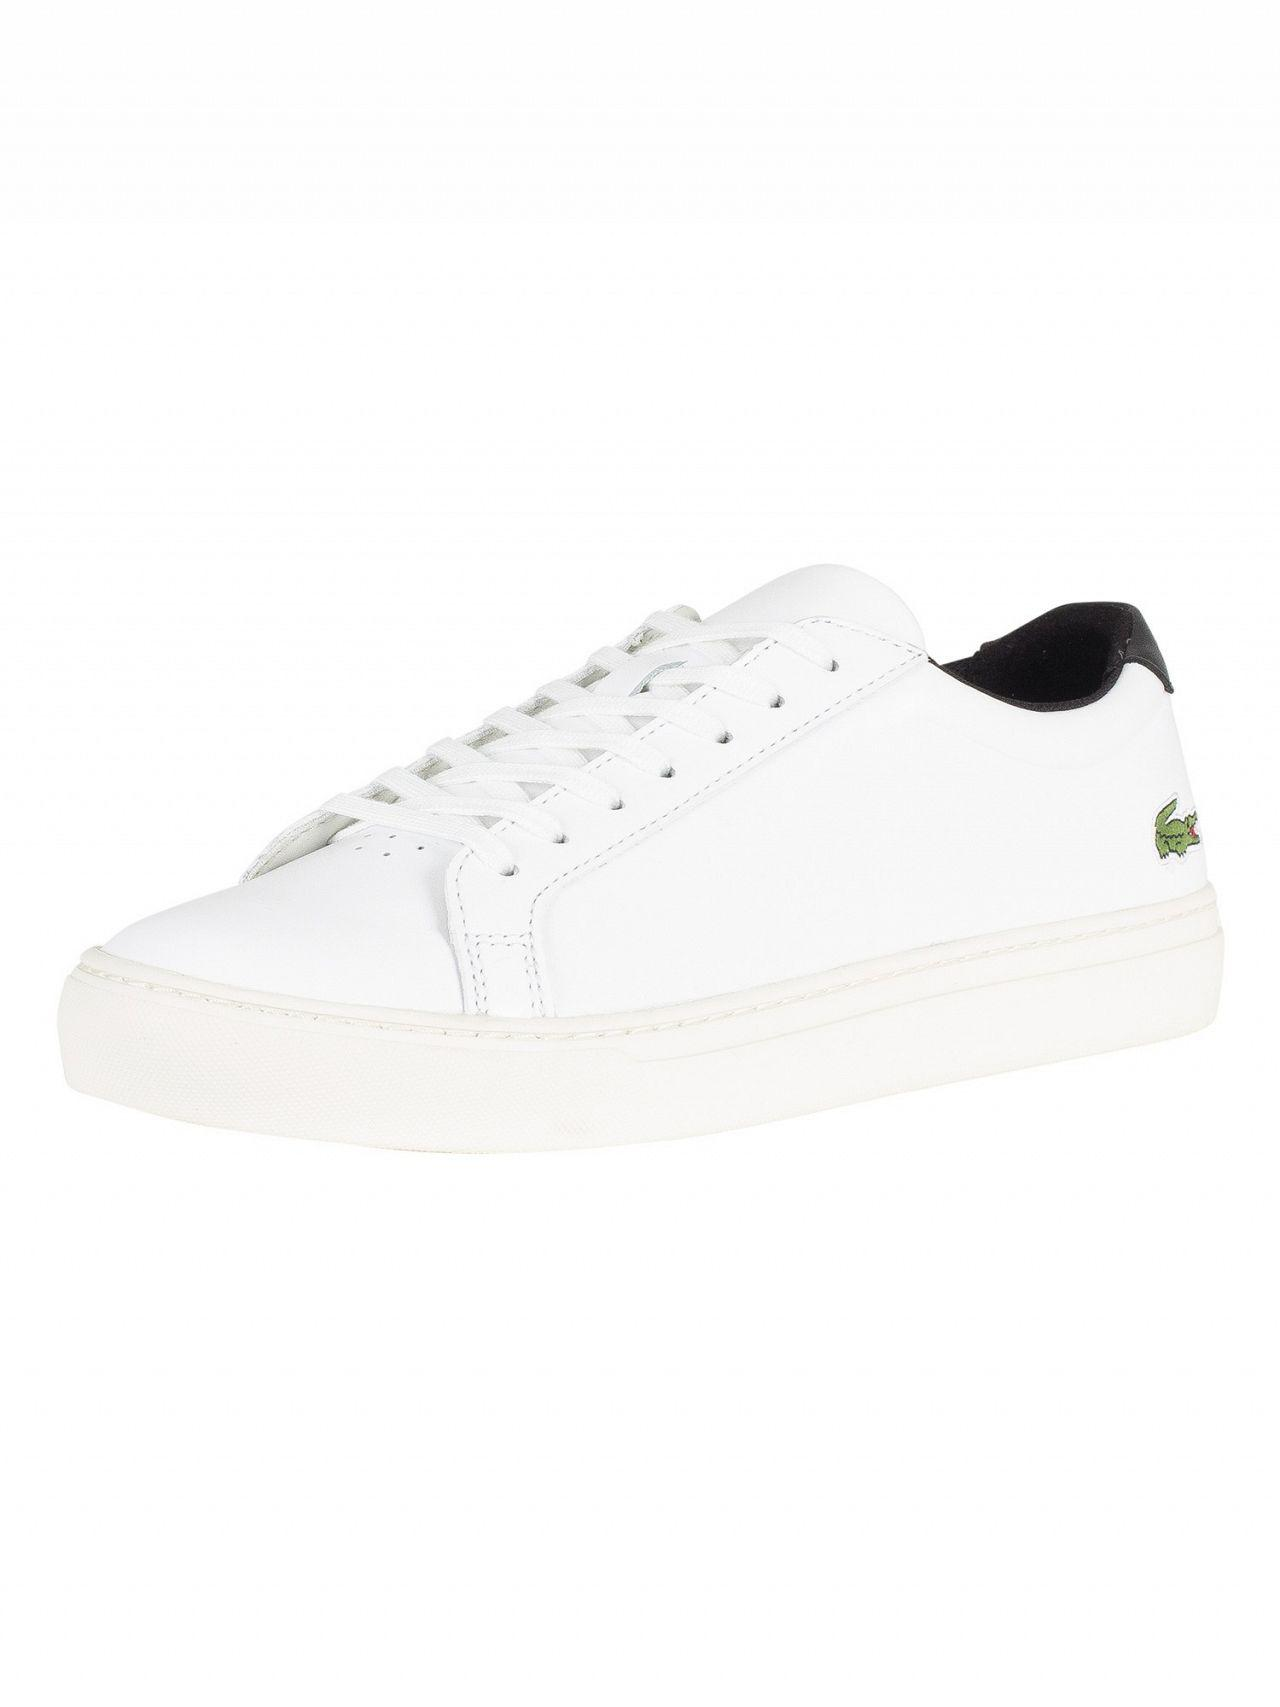 6aa1e4fec Lyst - Lacoste White black L.12.12 317 4 Cam Leather Trainers in ...